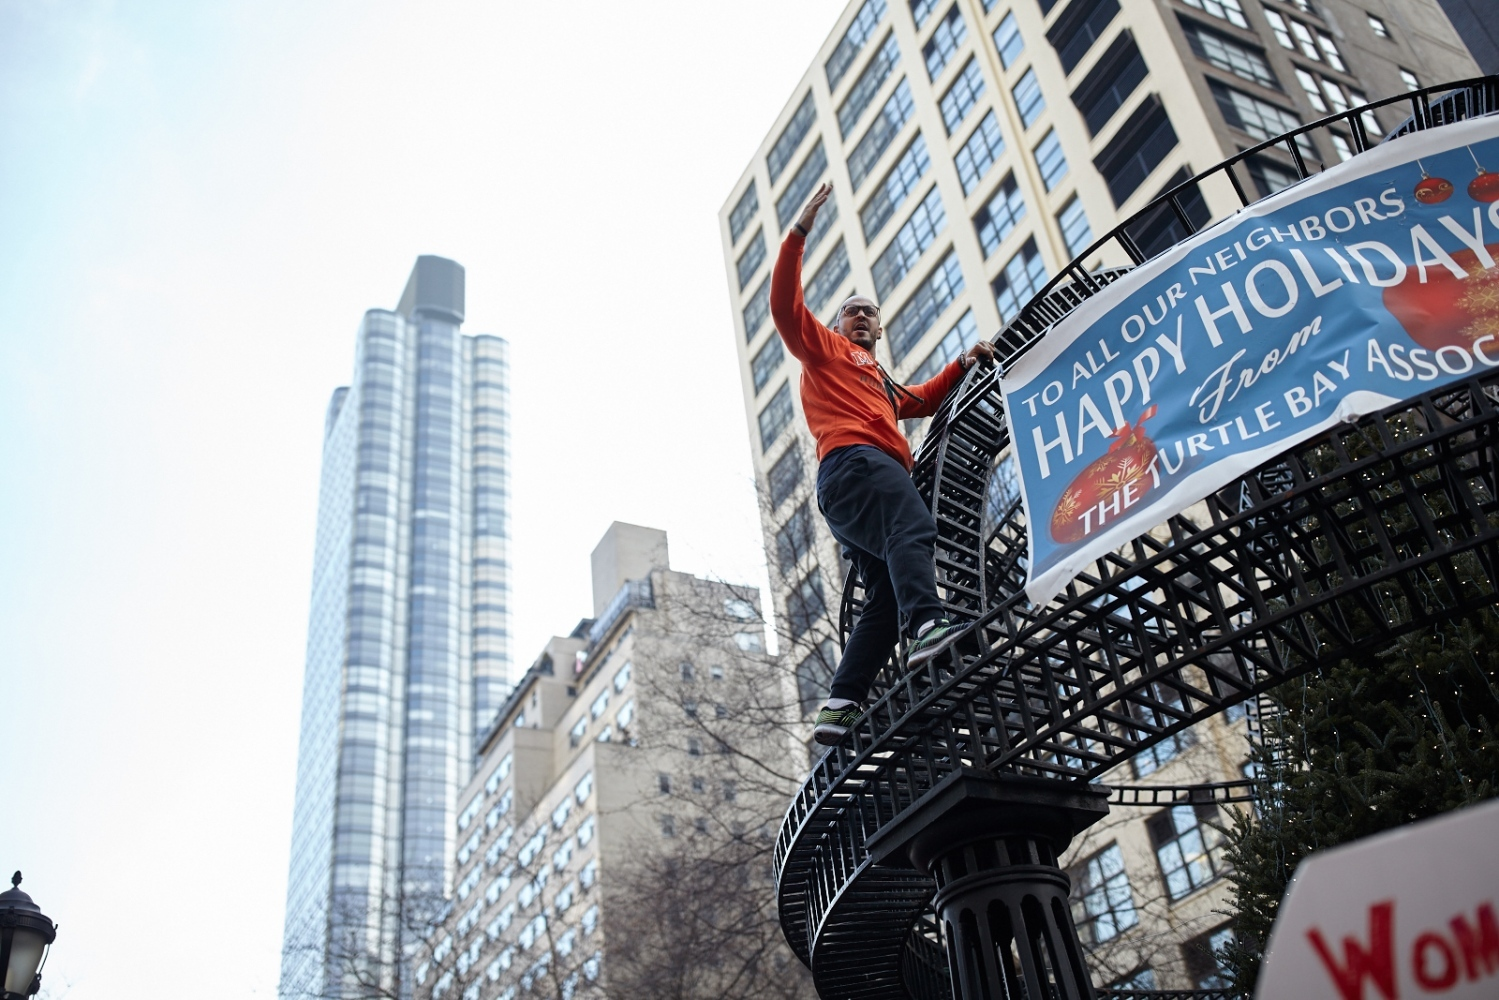 A demonstrator climbs up a metal sculpture and attempts to excite the crowd at Dag Hammarskjold Plaza in Manhattan, New York, U.S. January 21, 2017.